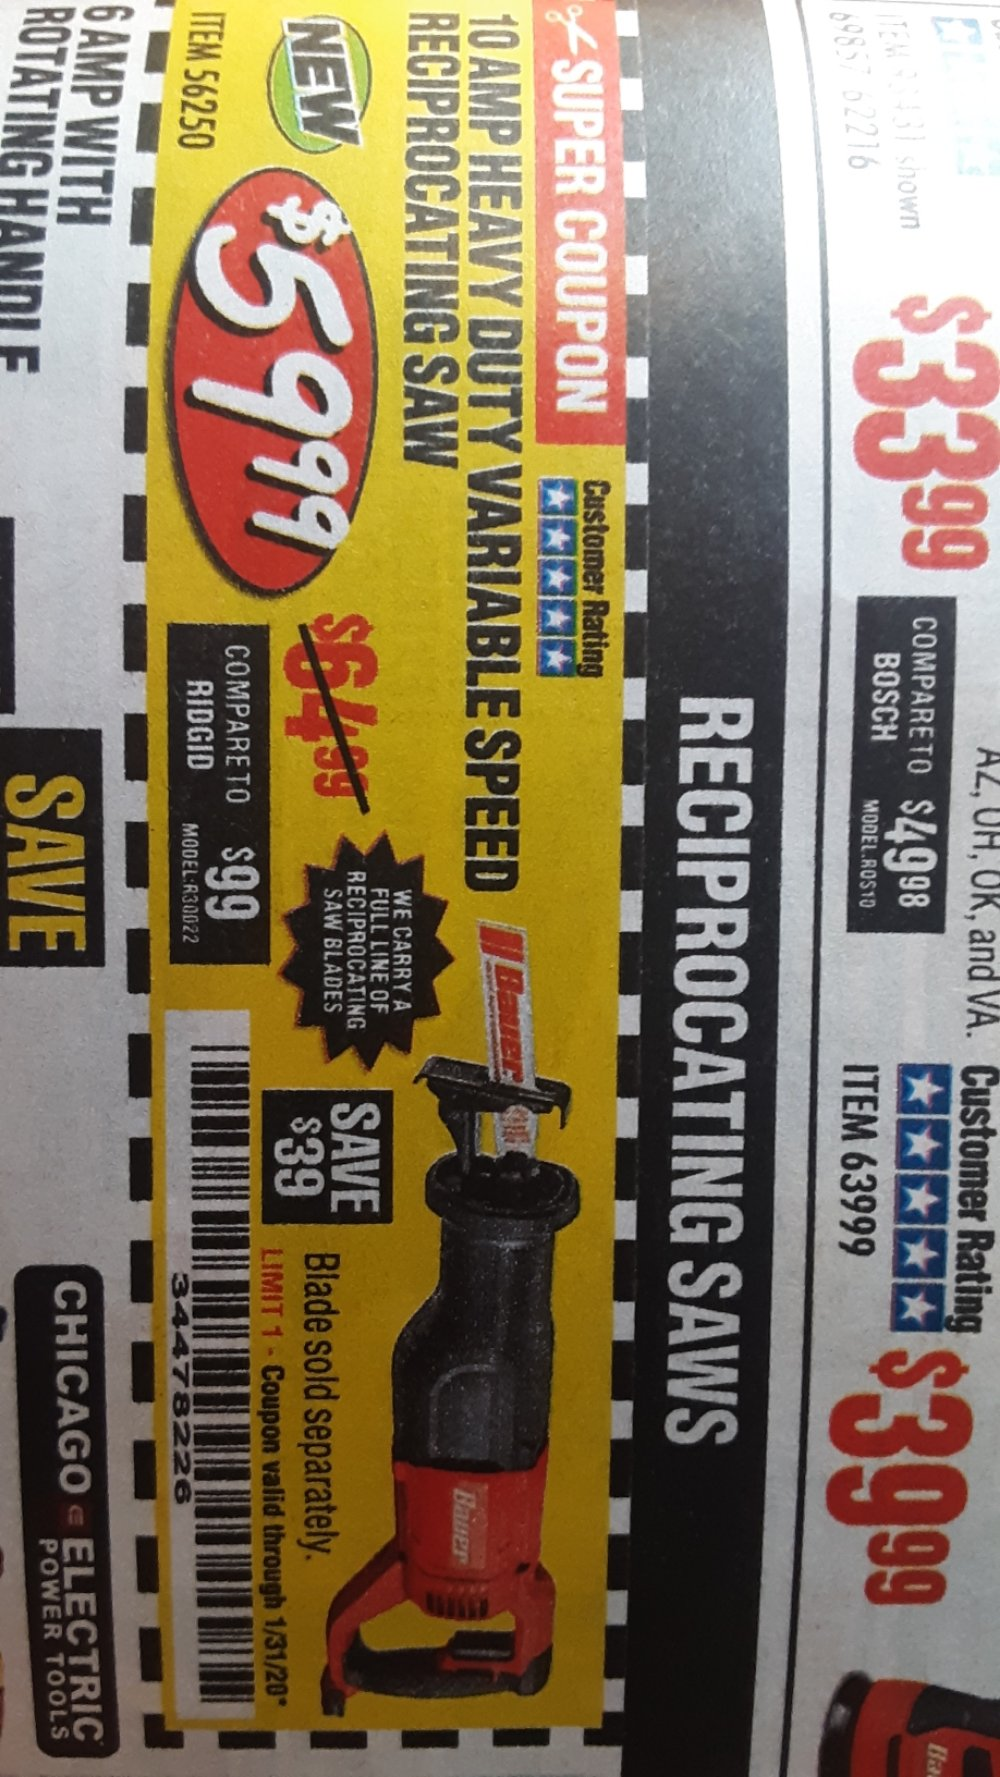 Harbor Freight Coupon, HF Coupons - 39 dollars off